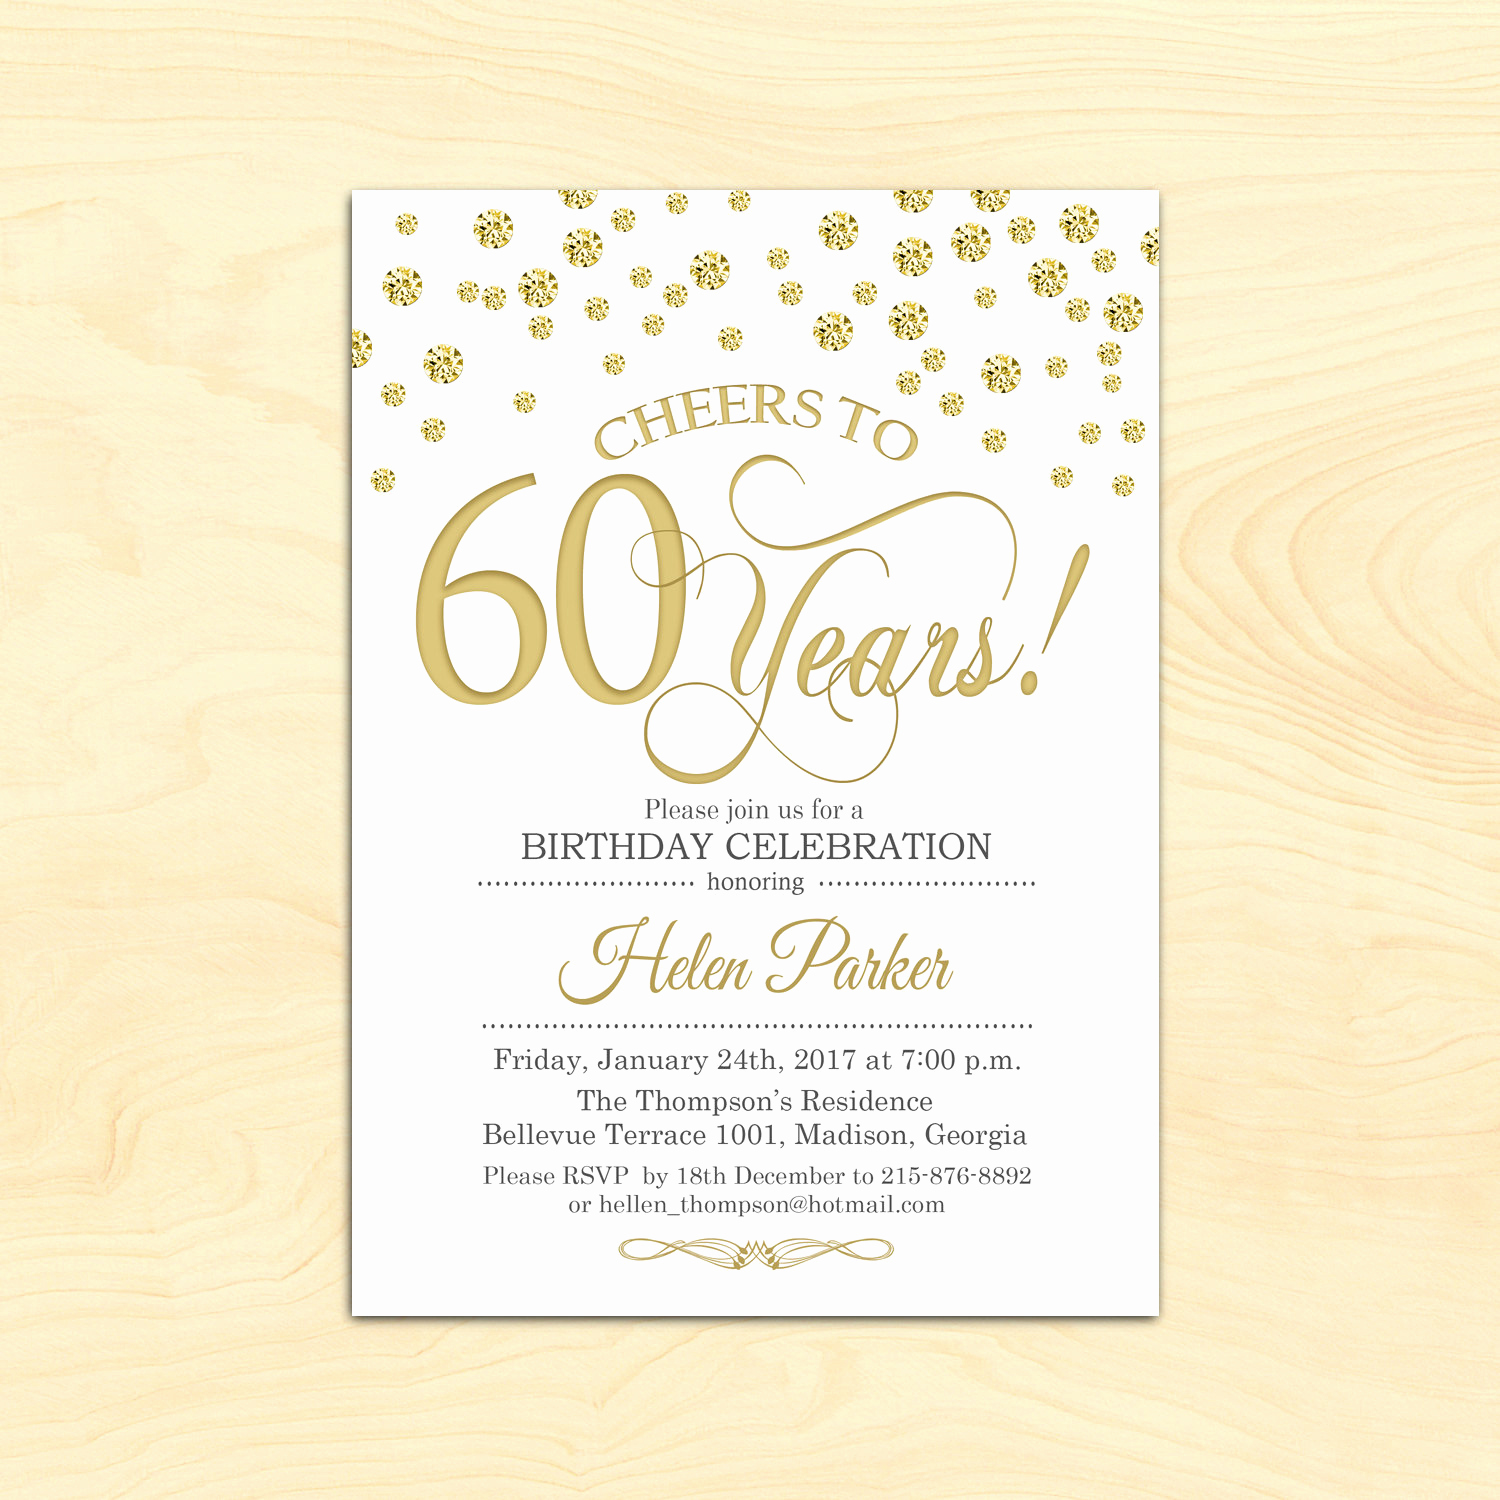 60 Th Birthday Invites Elegant 60th Birthday Invitation Any Age Cheers to 60 Years Gold